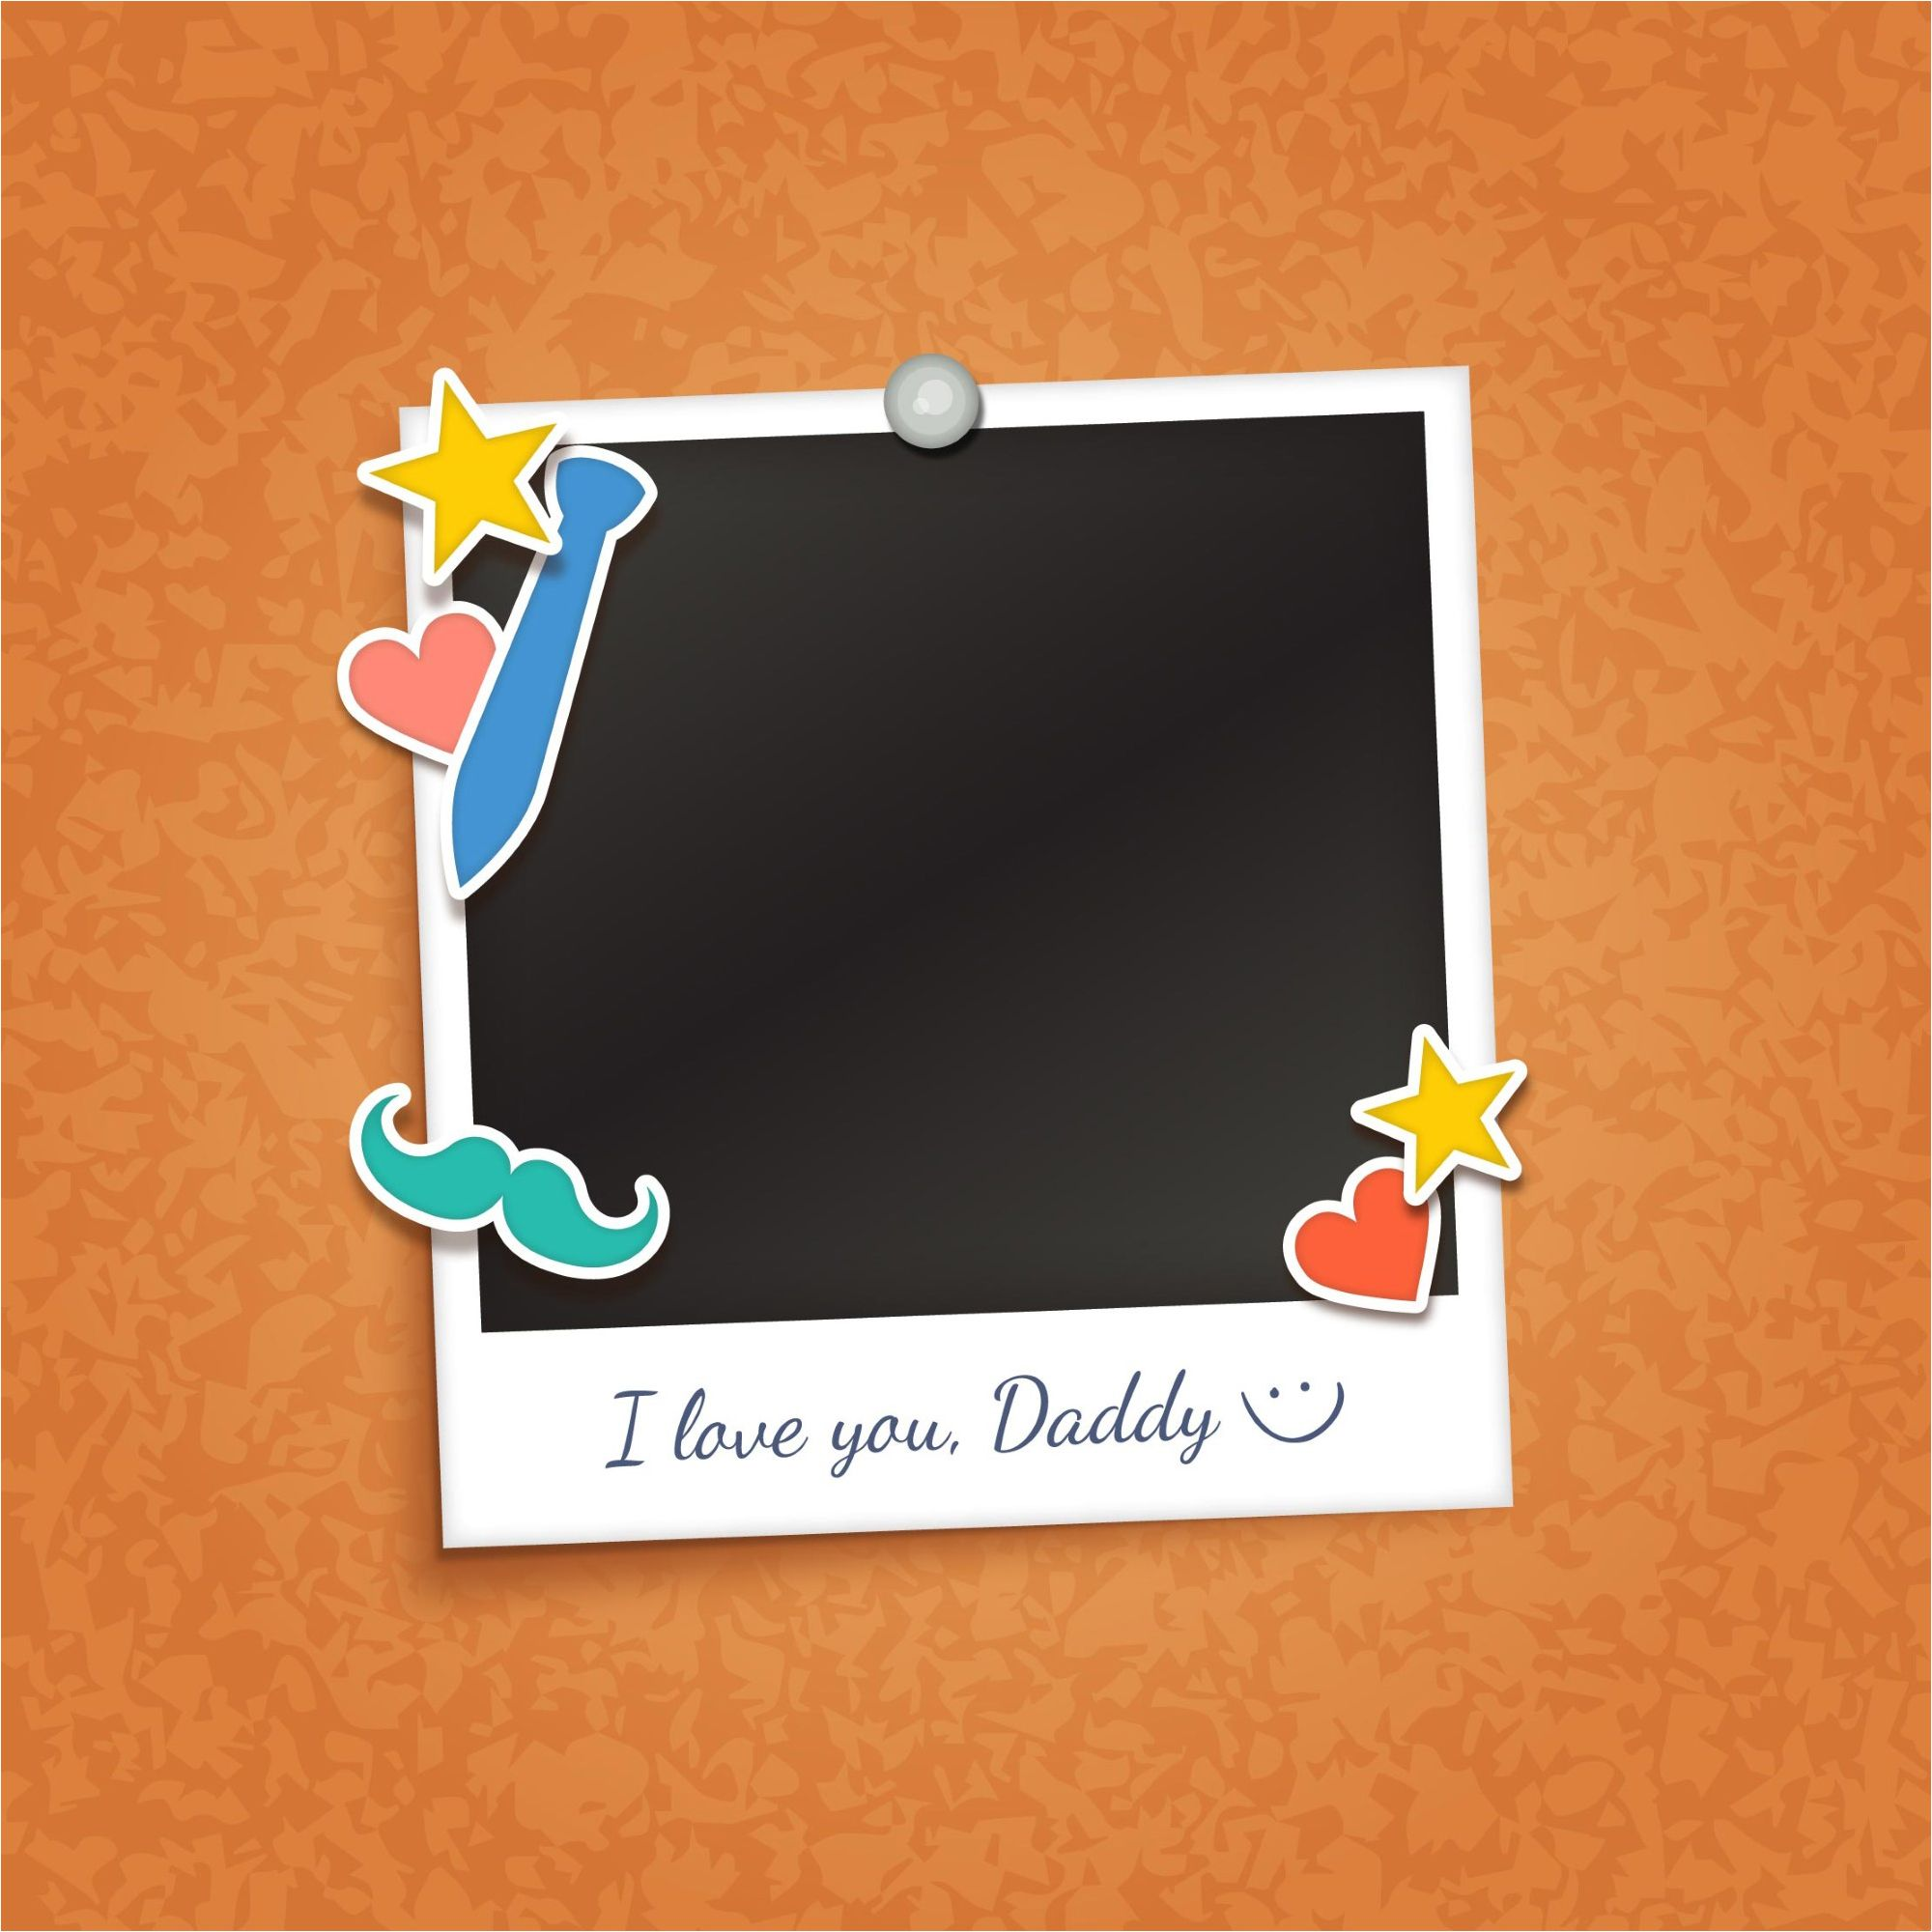 Happy Fathers Day Frame Photo Vector Background | Happy Father\'s Day ...